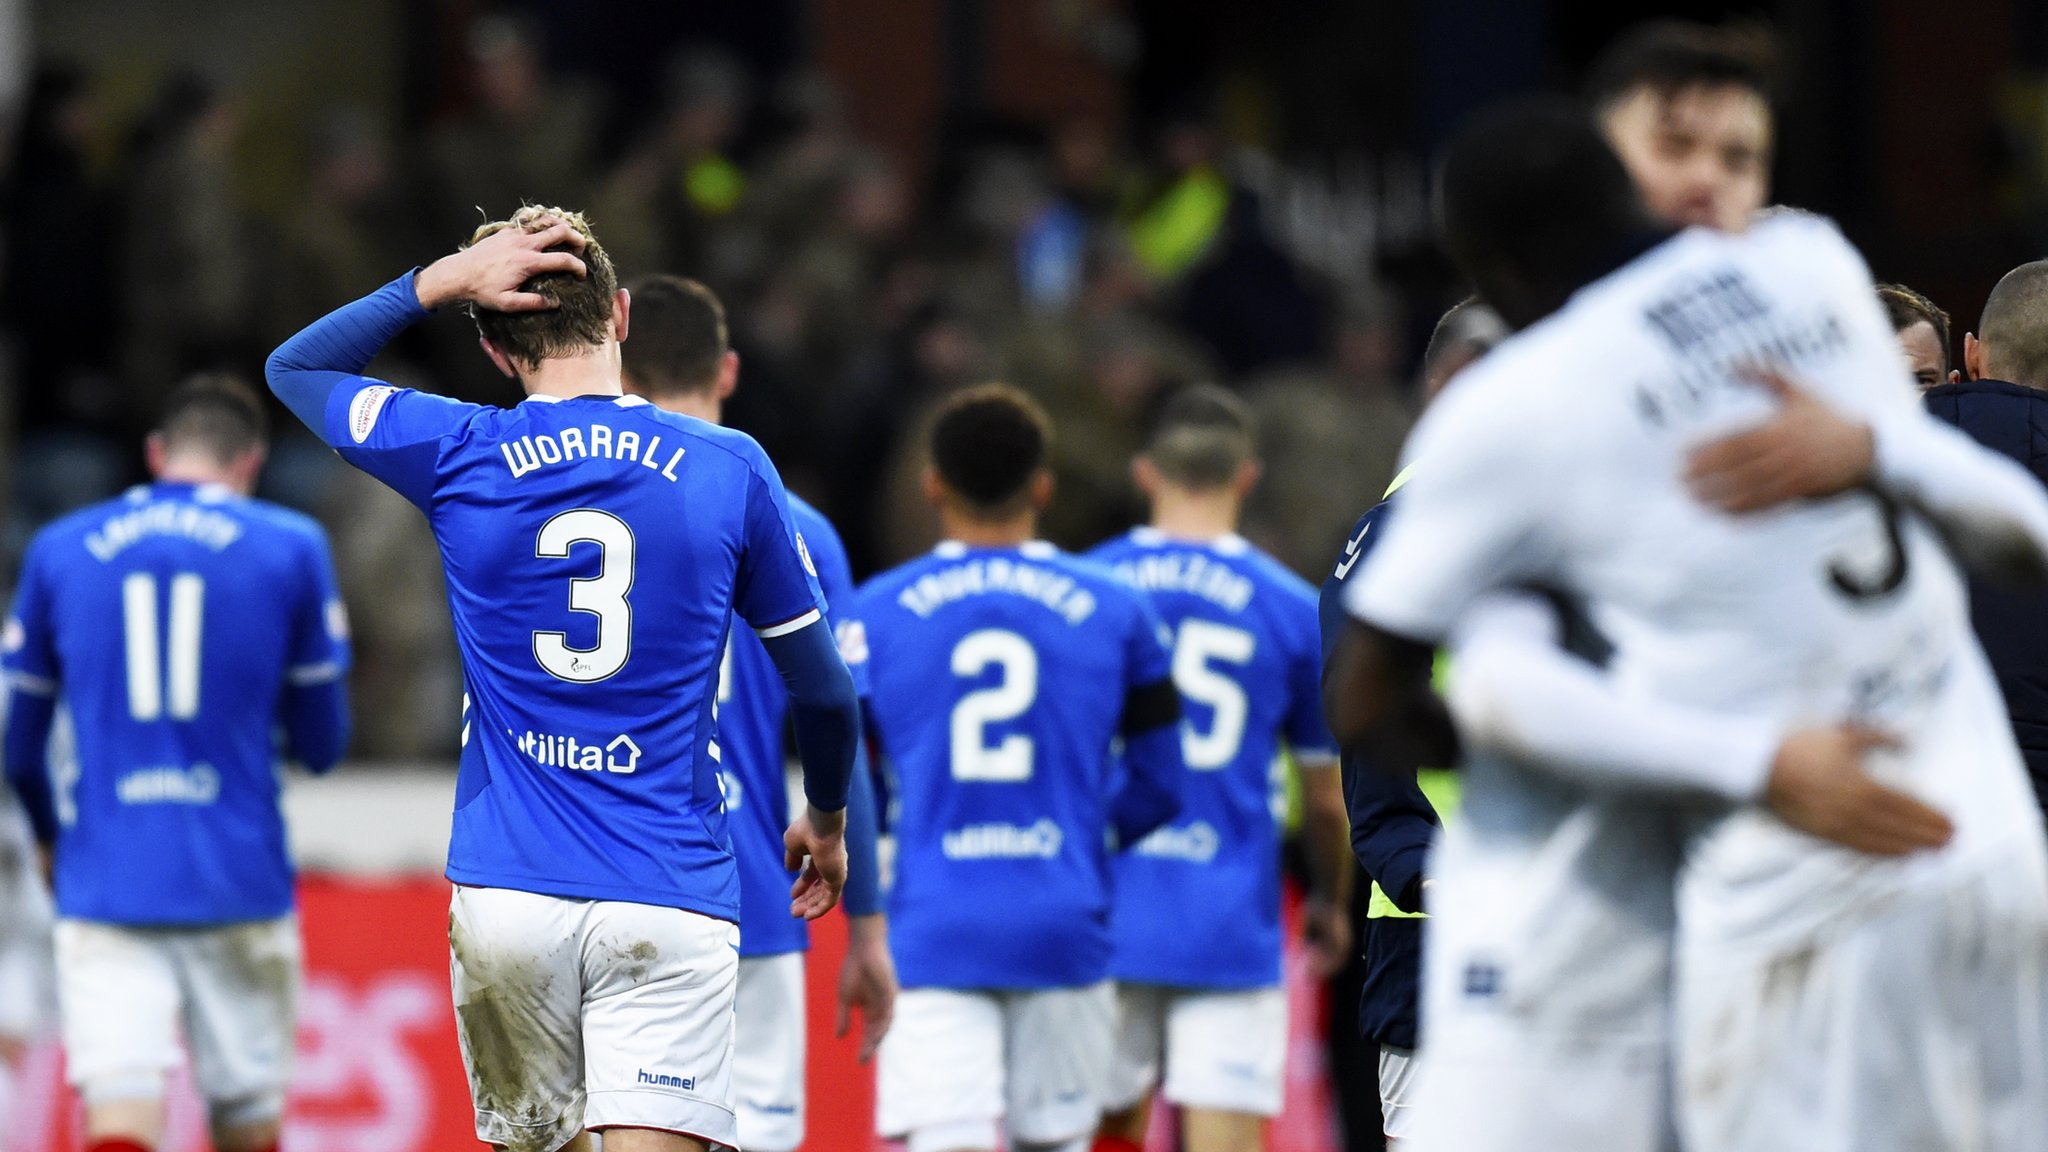 Dundee 1-1 Rangers: Steven Gerrard's side held by ten men at Dens